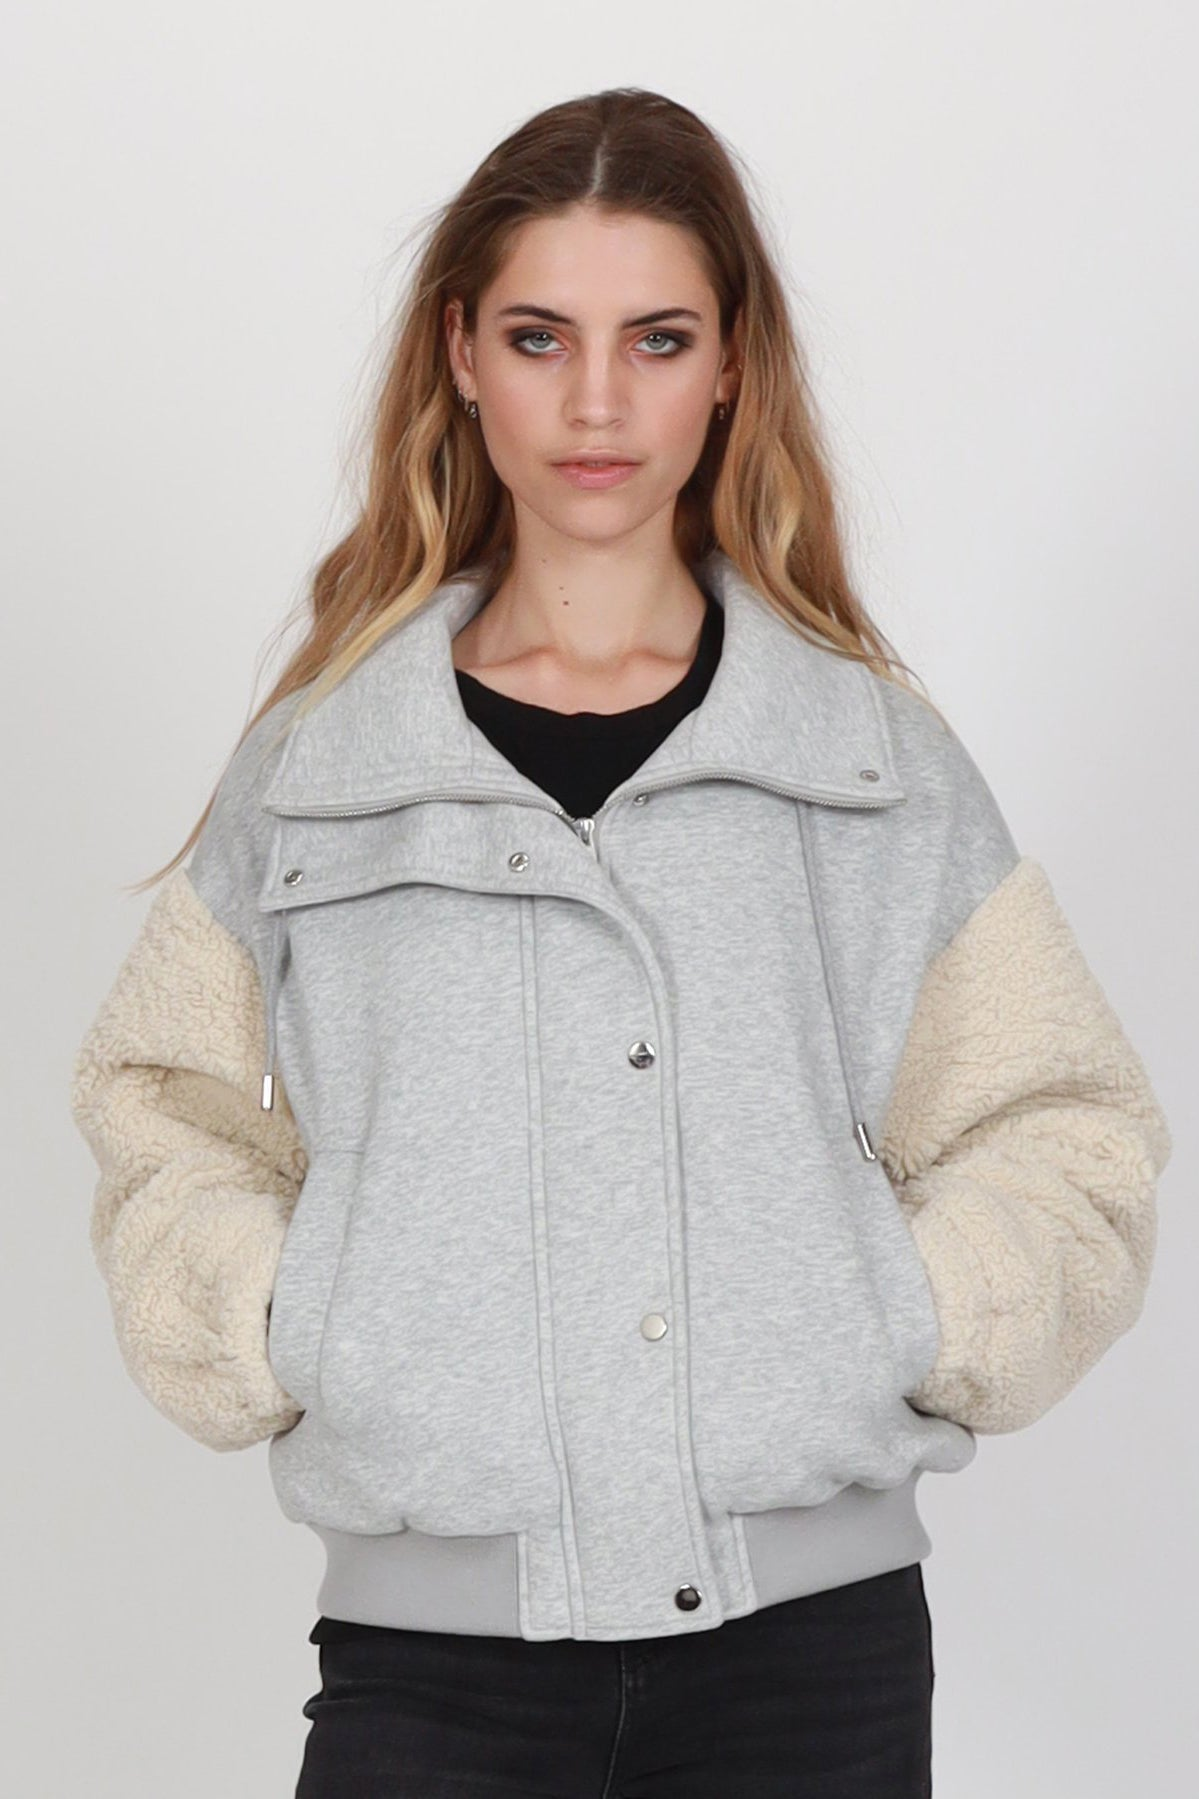 Rally Jersey Jacket - Neutral/Grey Marle